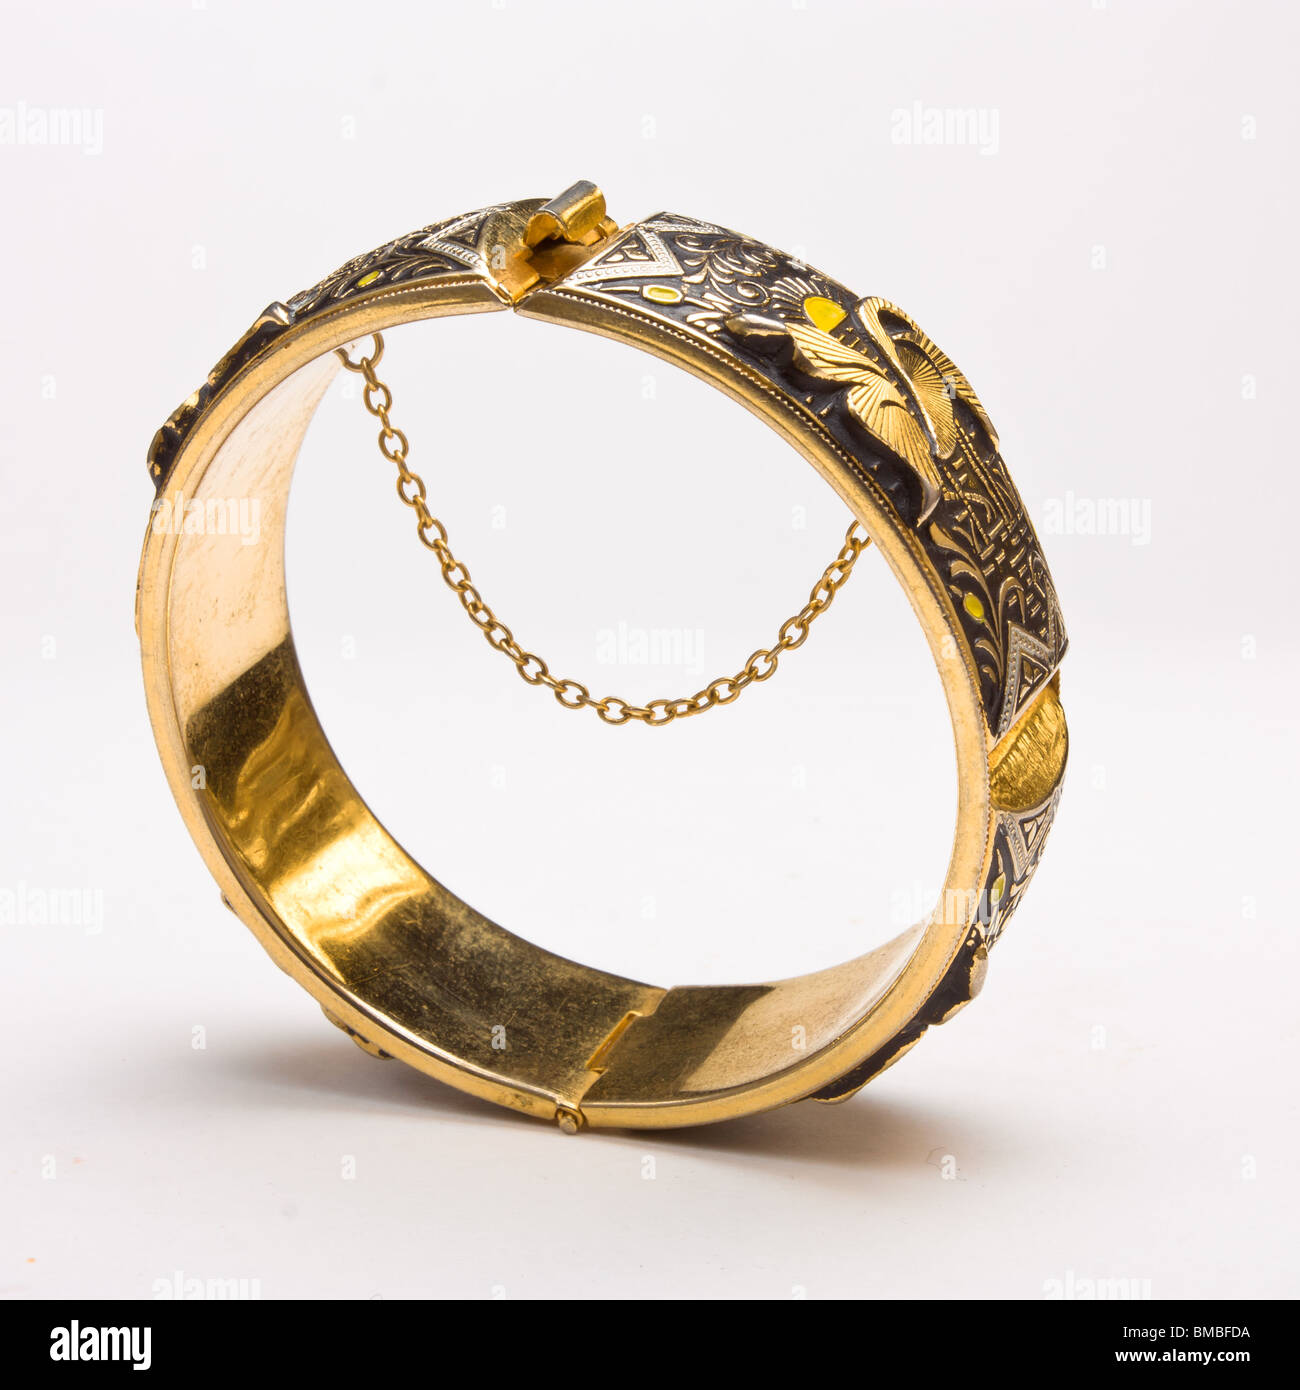 Gold bangle with safety chain isolated against white background - Stock Image